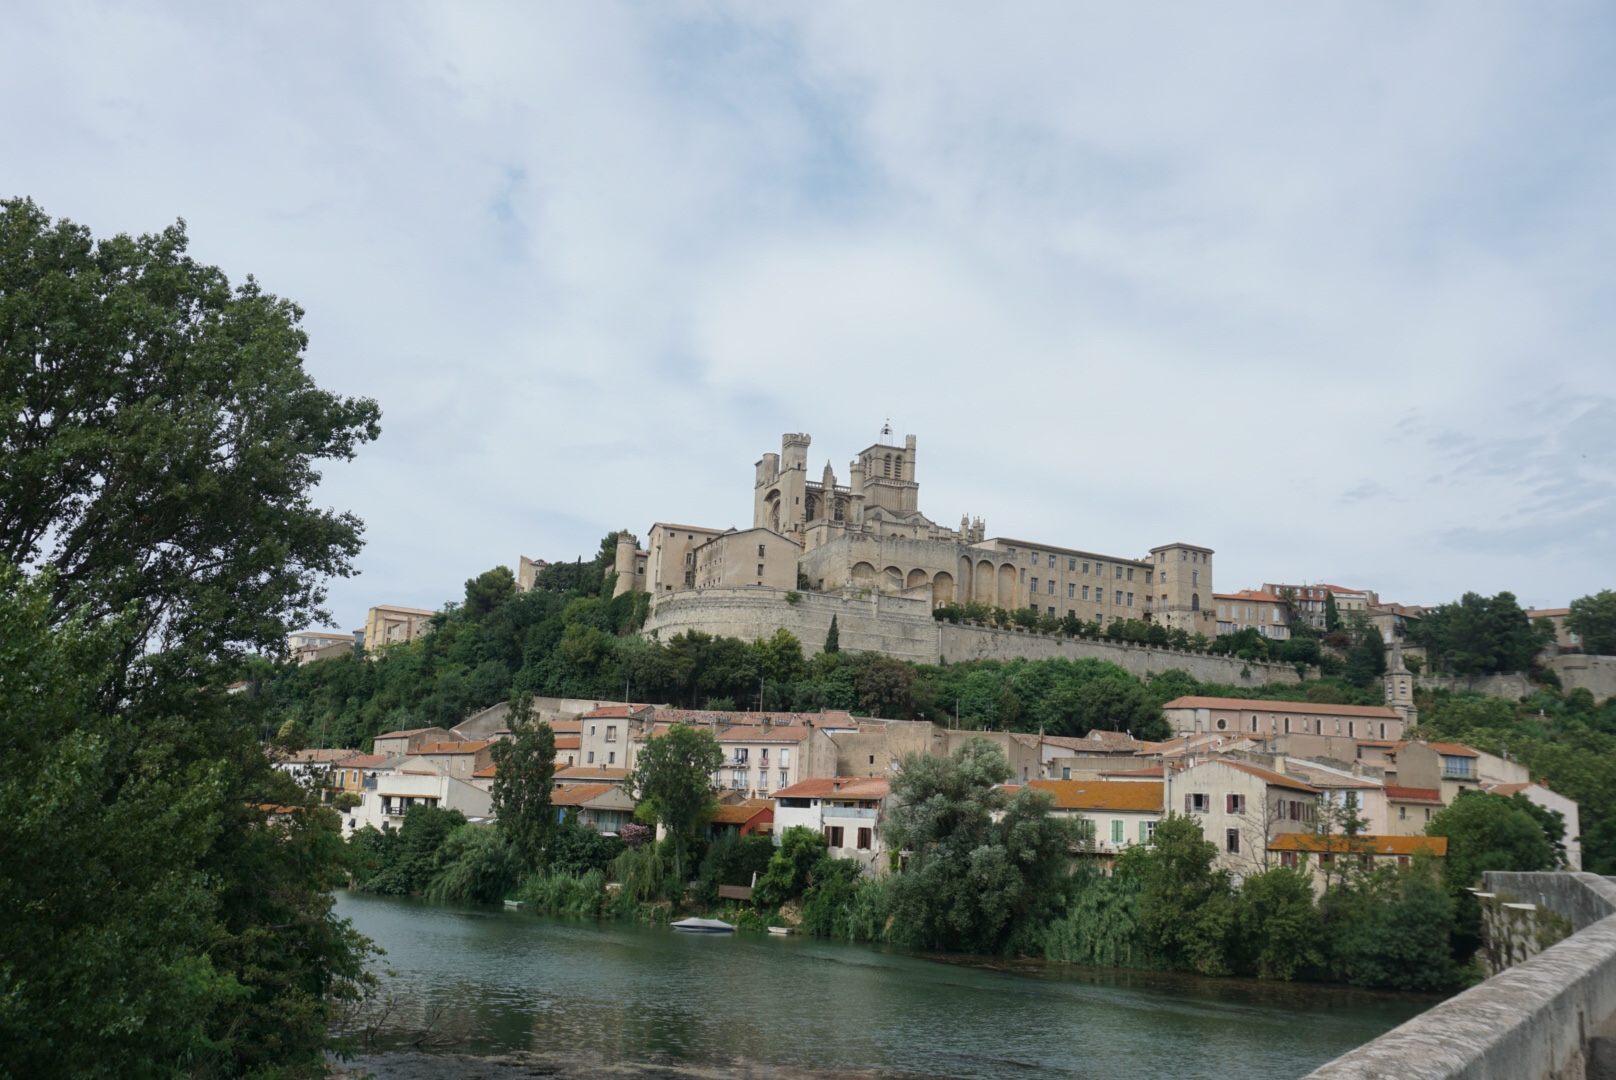 In And Out Beziers visit béziers: how to explore the city in a day - secretmoona